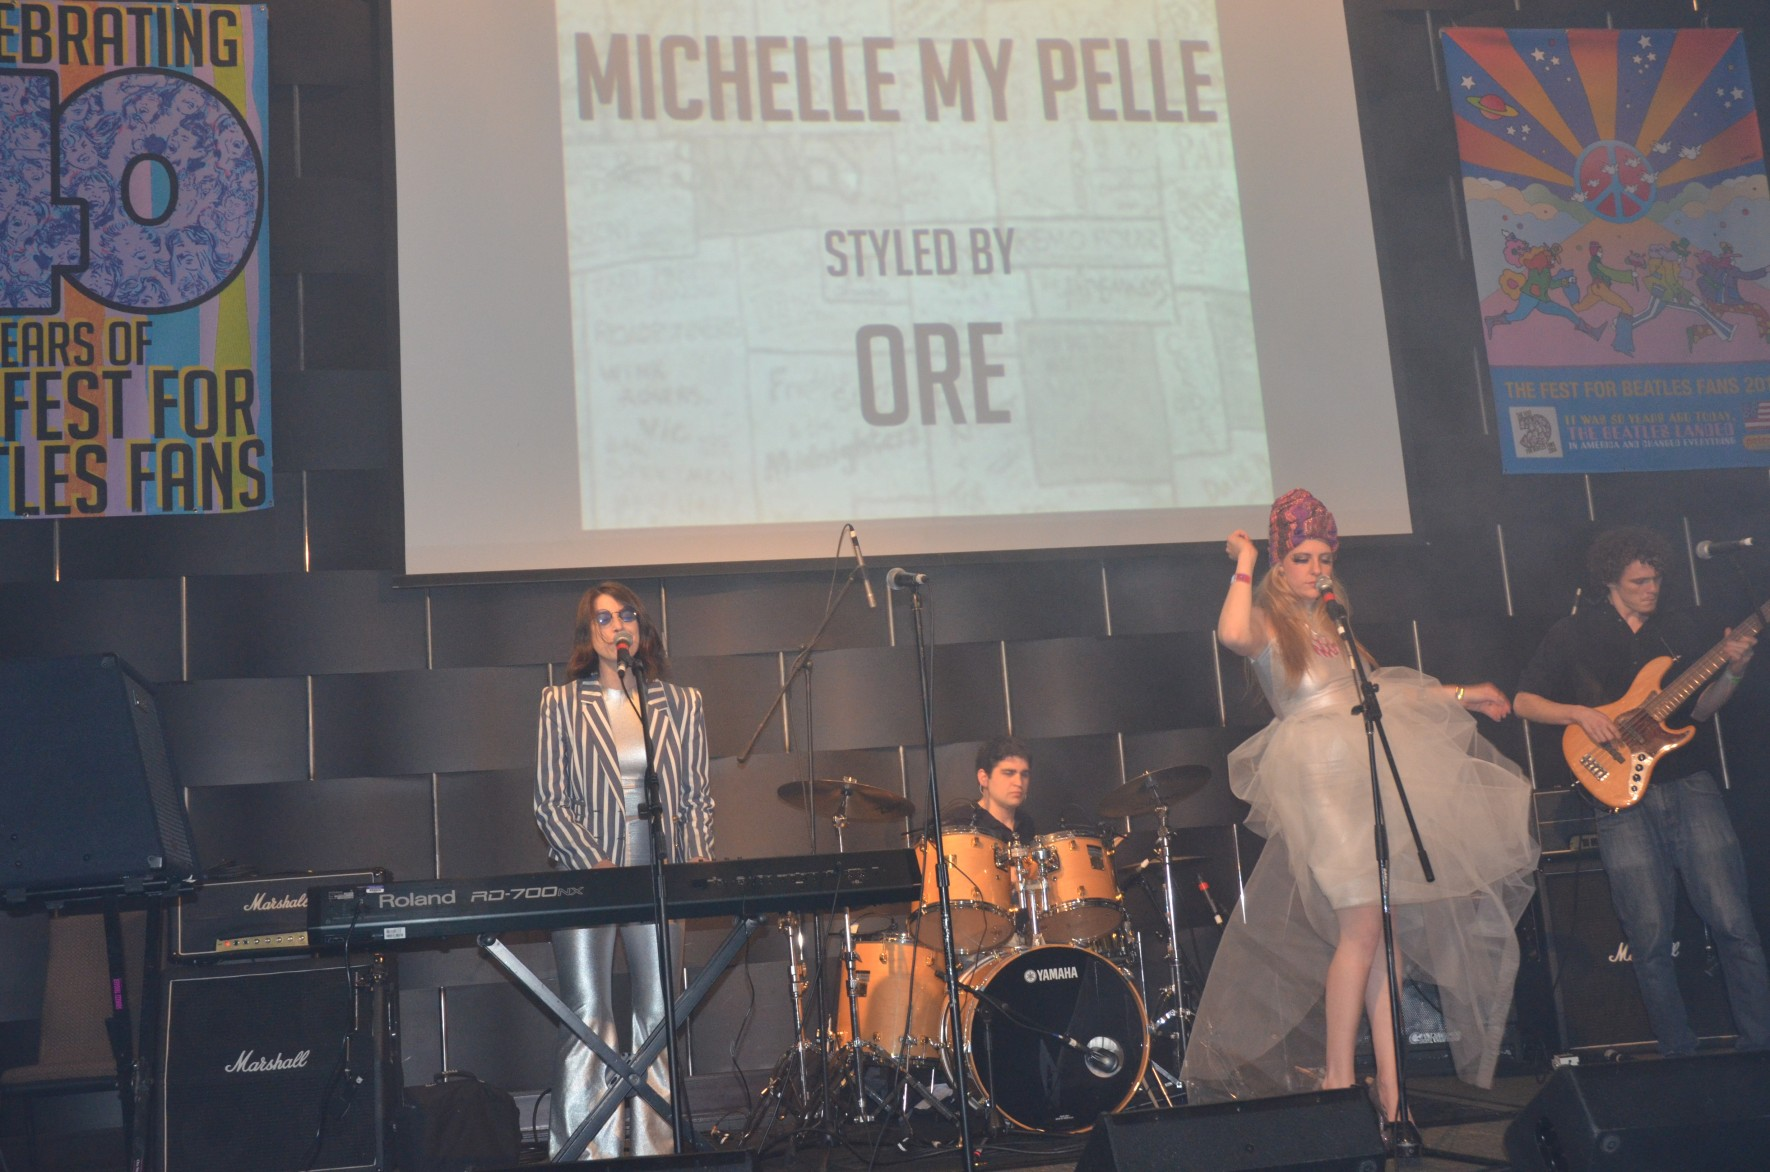 One of the new attractions at NYC Fest 14 was The Cavern, our second ballroom. Michelle My Pelle was one of many groups who took to the stage on Friday night.